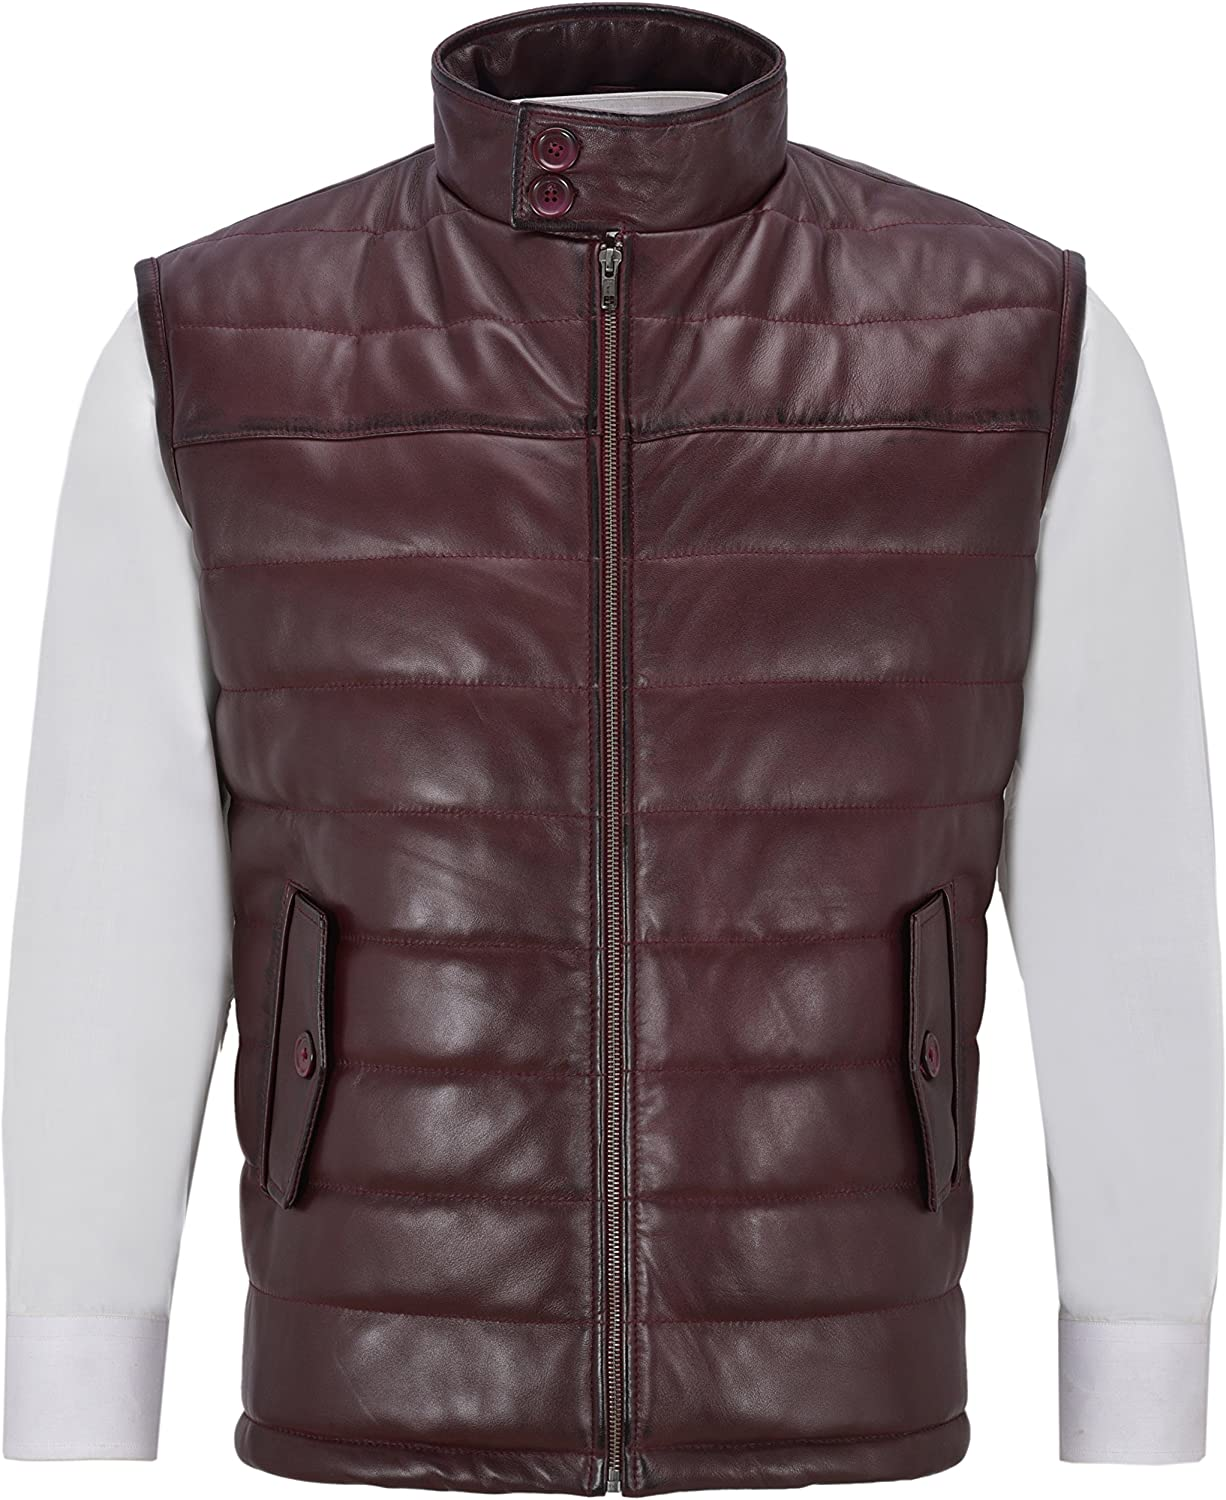 Men's Slim Fit Cherry Burgundy Red Gilet Vest Stand Up Collar Quilted Waistcoat Soft Lamb Leather 4330